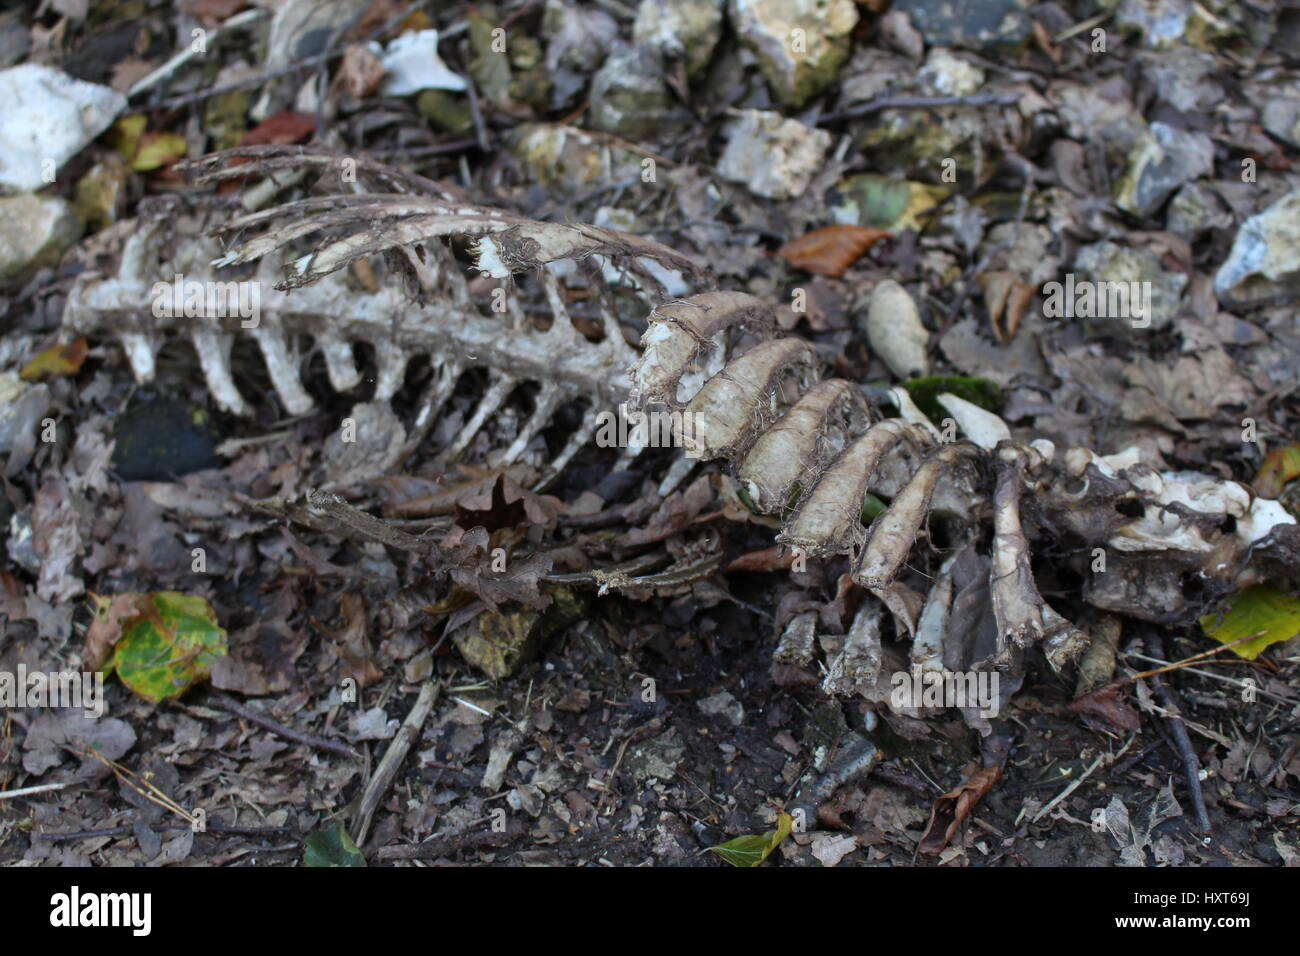 Found on a walk in the countryside. Spine of a decomposed animal. - Stock Image